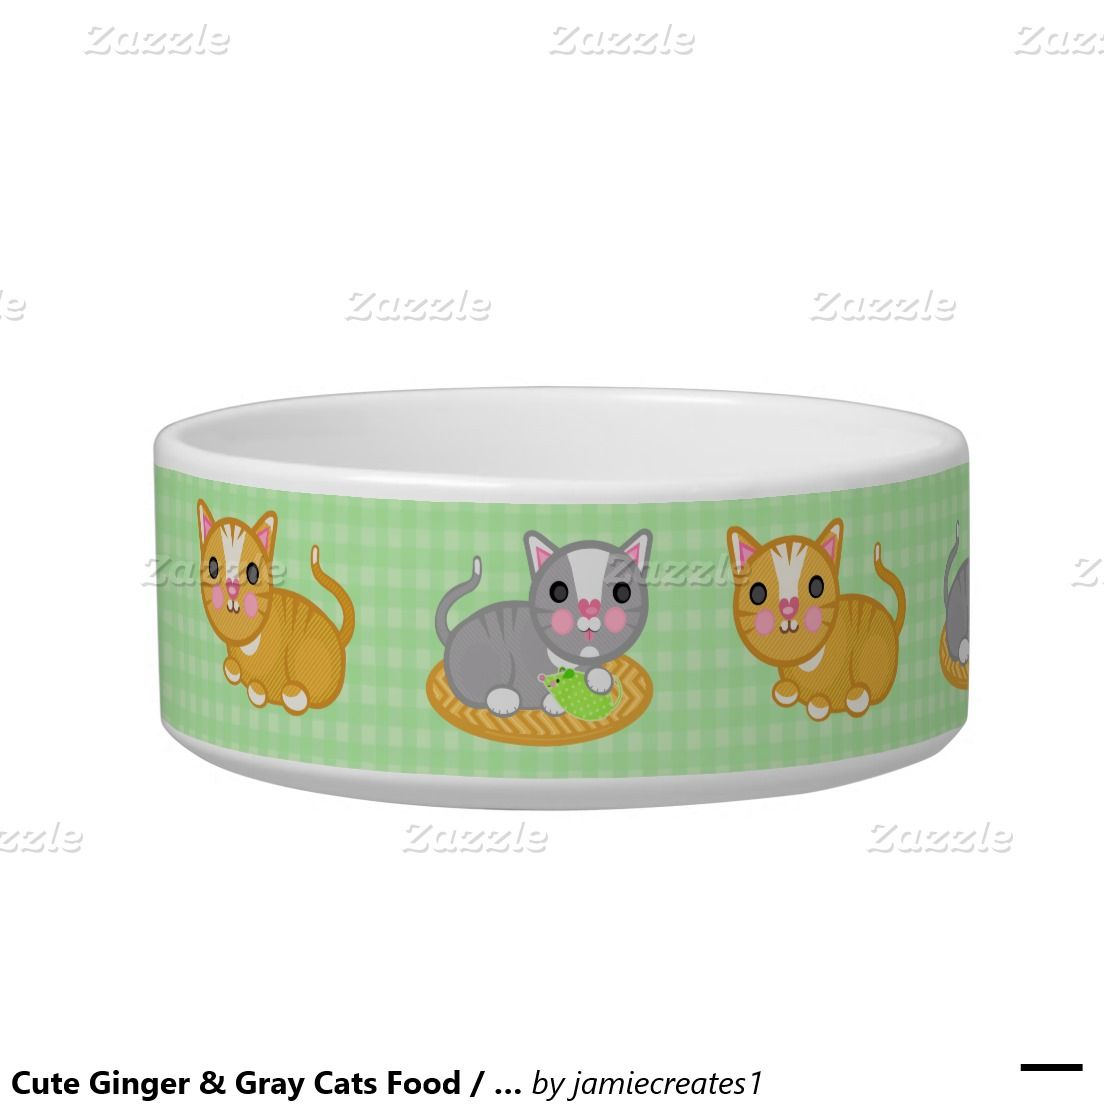 Cute Ginger Gray Cats Food Water Pet Bowl Zazzle